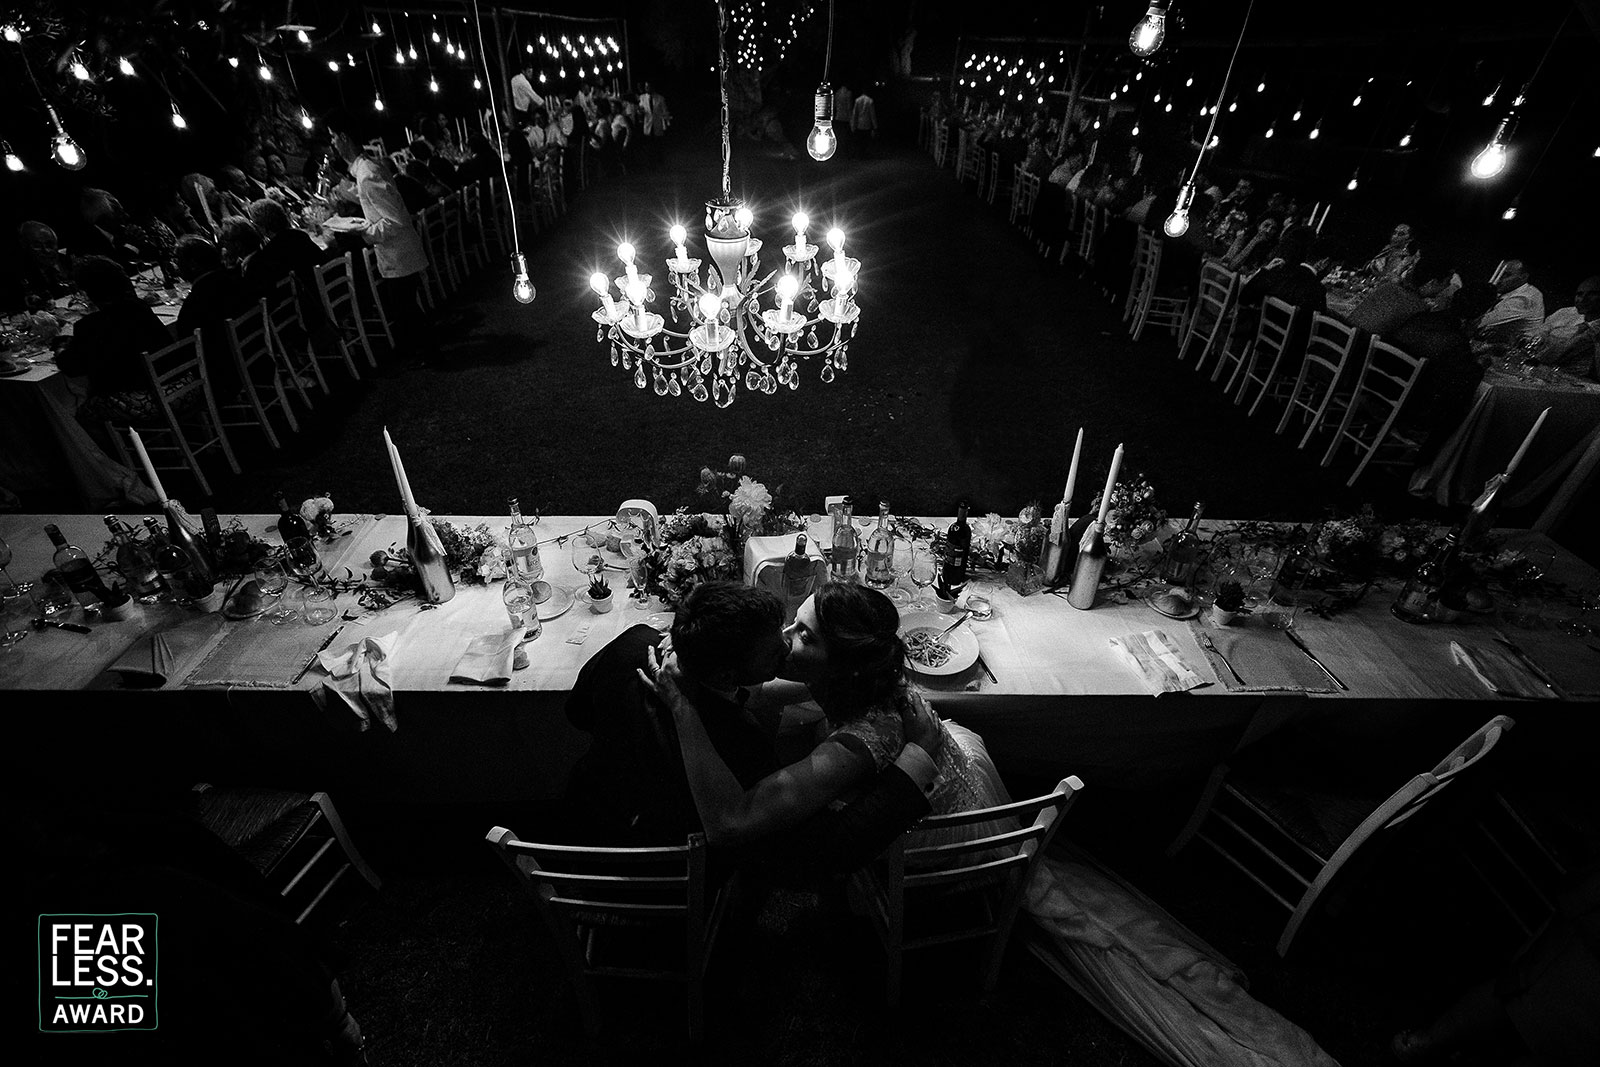 miglior-fotografo-di-matrimonio-romantico-best-romantic-wedding-photographer